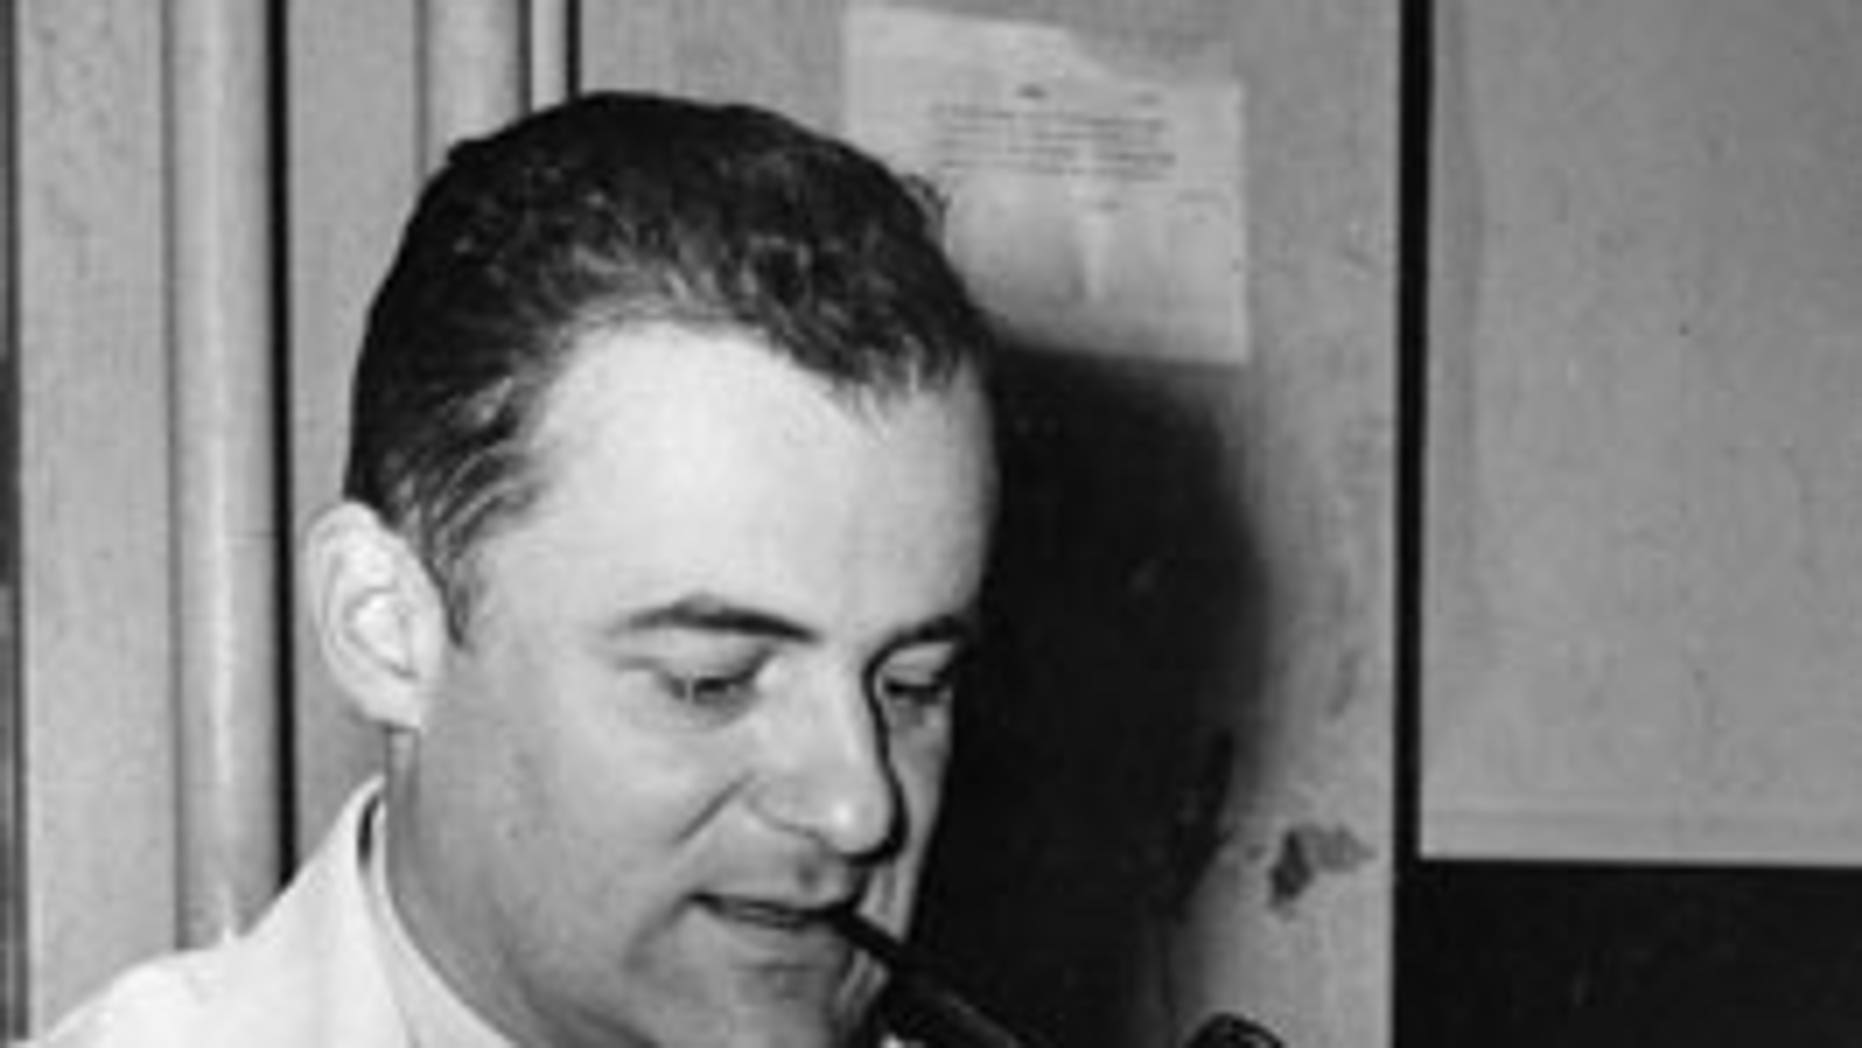 This Oct. 21, 1954 file photo shows Dr. Frederick C. Robbins, new chief of pediatrics and contagious diseases at Cleveland City Hospital, after the announcement that he, Dr. John Enders and Dr. Thomas Weller were awarded the Nobel prize for medicine. The 1954 Nobel Prize in medicine was awarded for work with fetal tissue that led to developing a vaccine against polio.